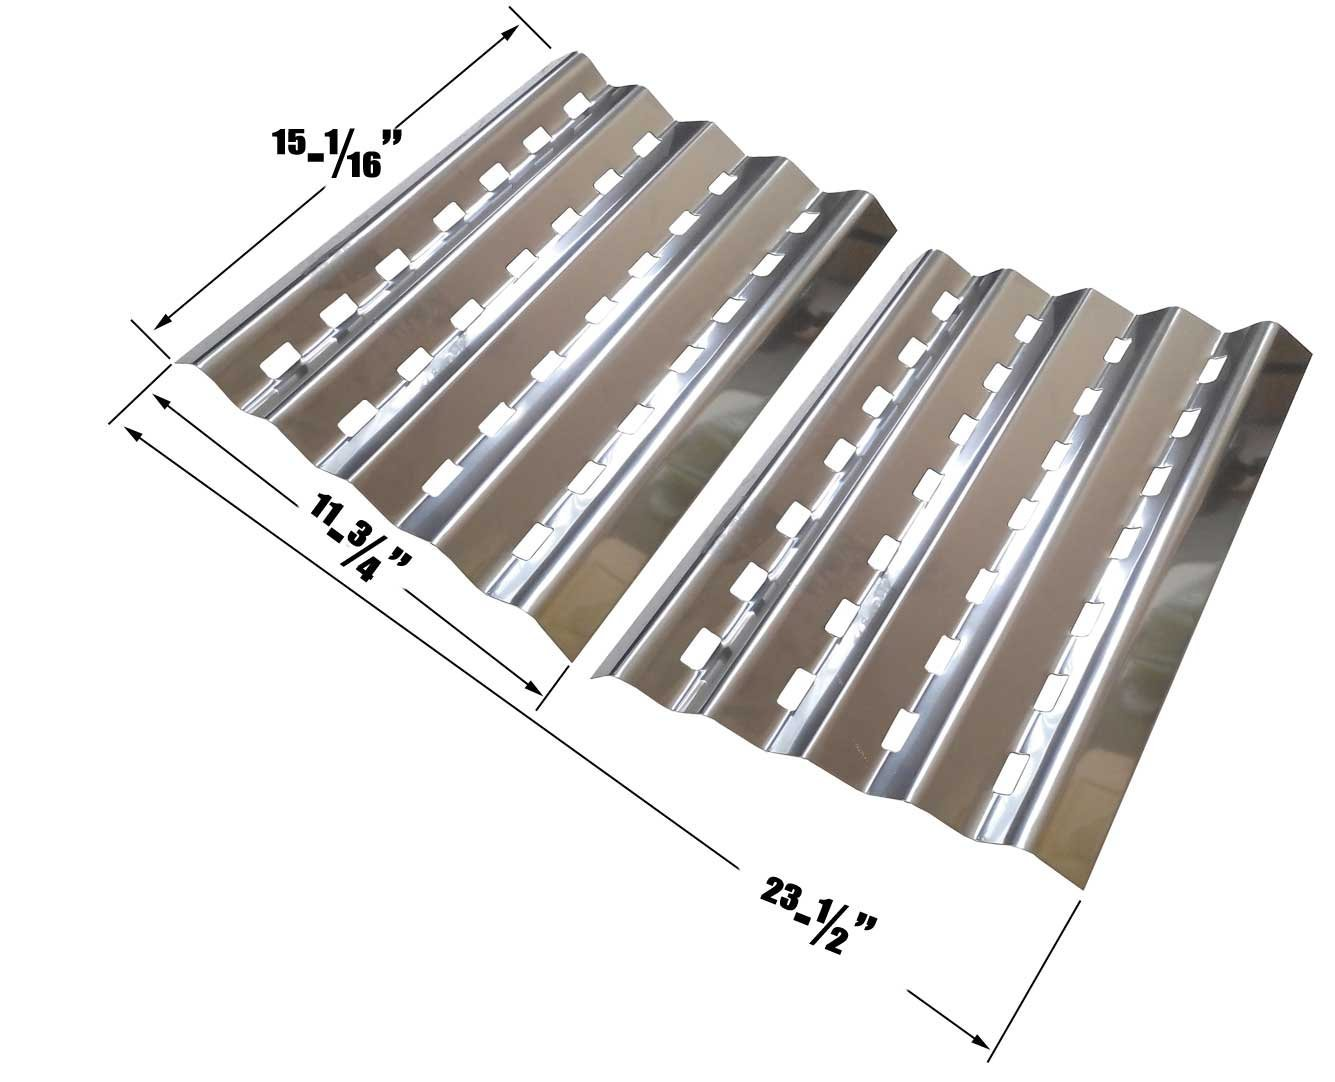 Brinkmann 2400, 2400 Pro Series, Pro Series 2600, 810-2600-0, 810-2600-1, Pro Series 2630, 810-2630, Falcon 4400, Patio Chef SS48 Stainless Heat Shields, Set of 2 by Grill Parts Zone